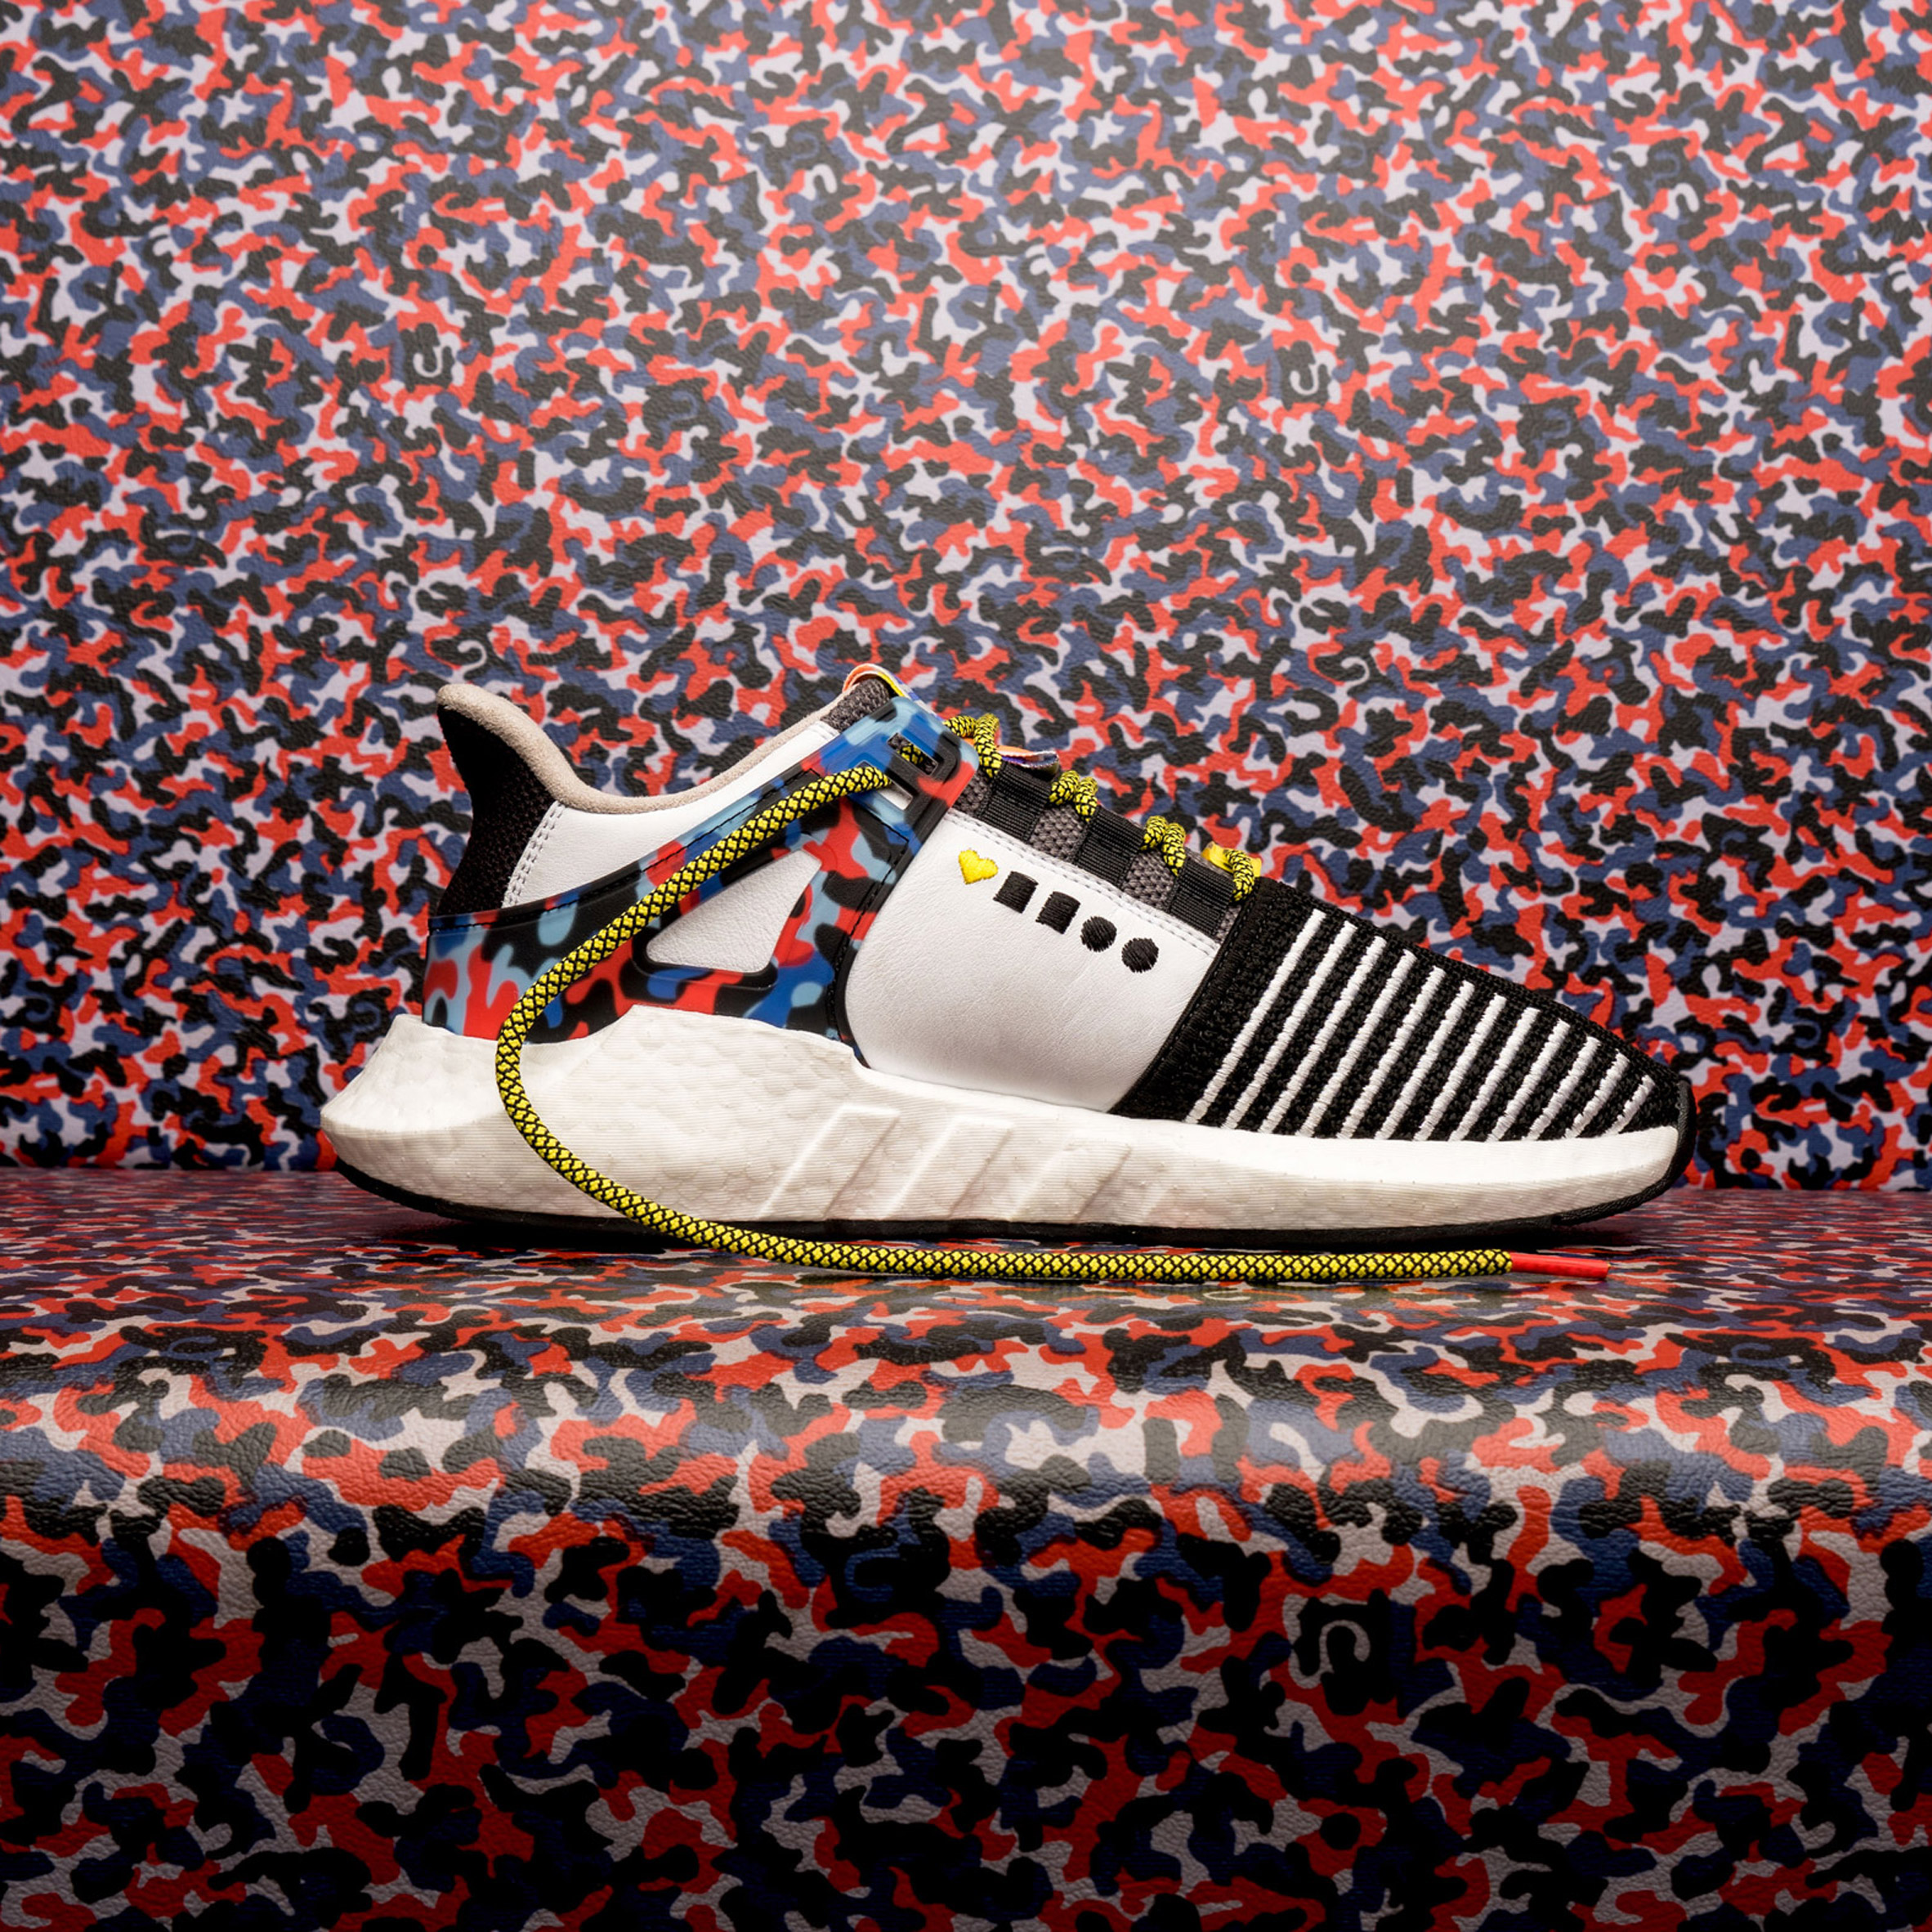 Trainers Berlin That Limited Adidas Seats Edition Match Subway Releases KuTl31JcF